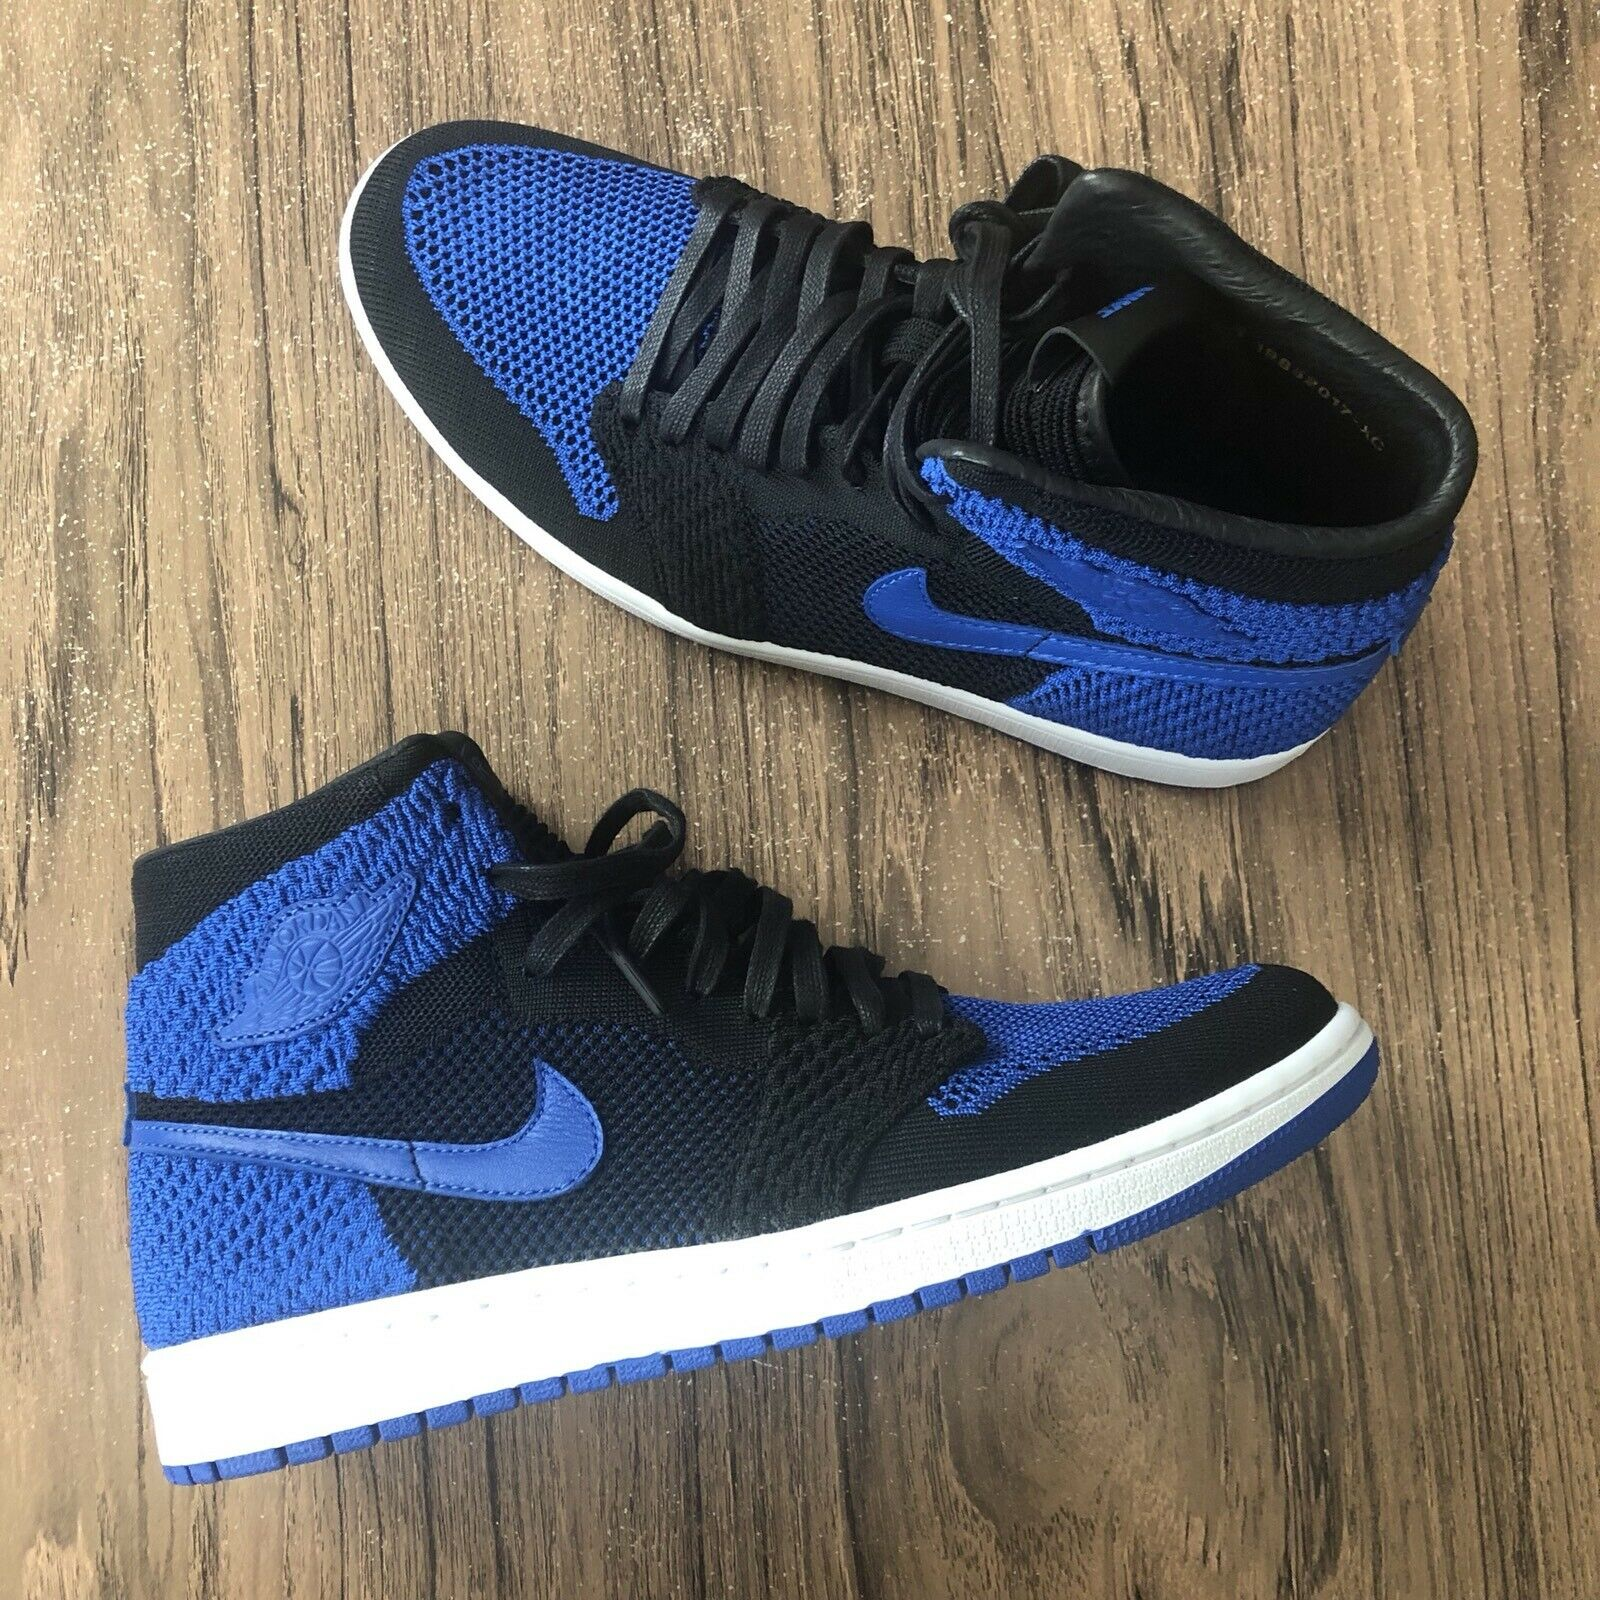 A1201G Air Jordan 1 Retro Hi Flyknit Royal 919704-006 Mens Size 11 NEW